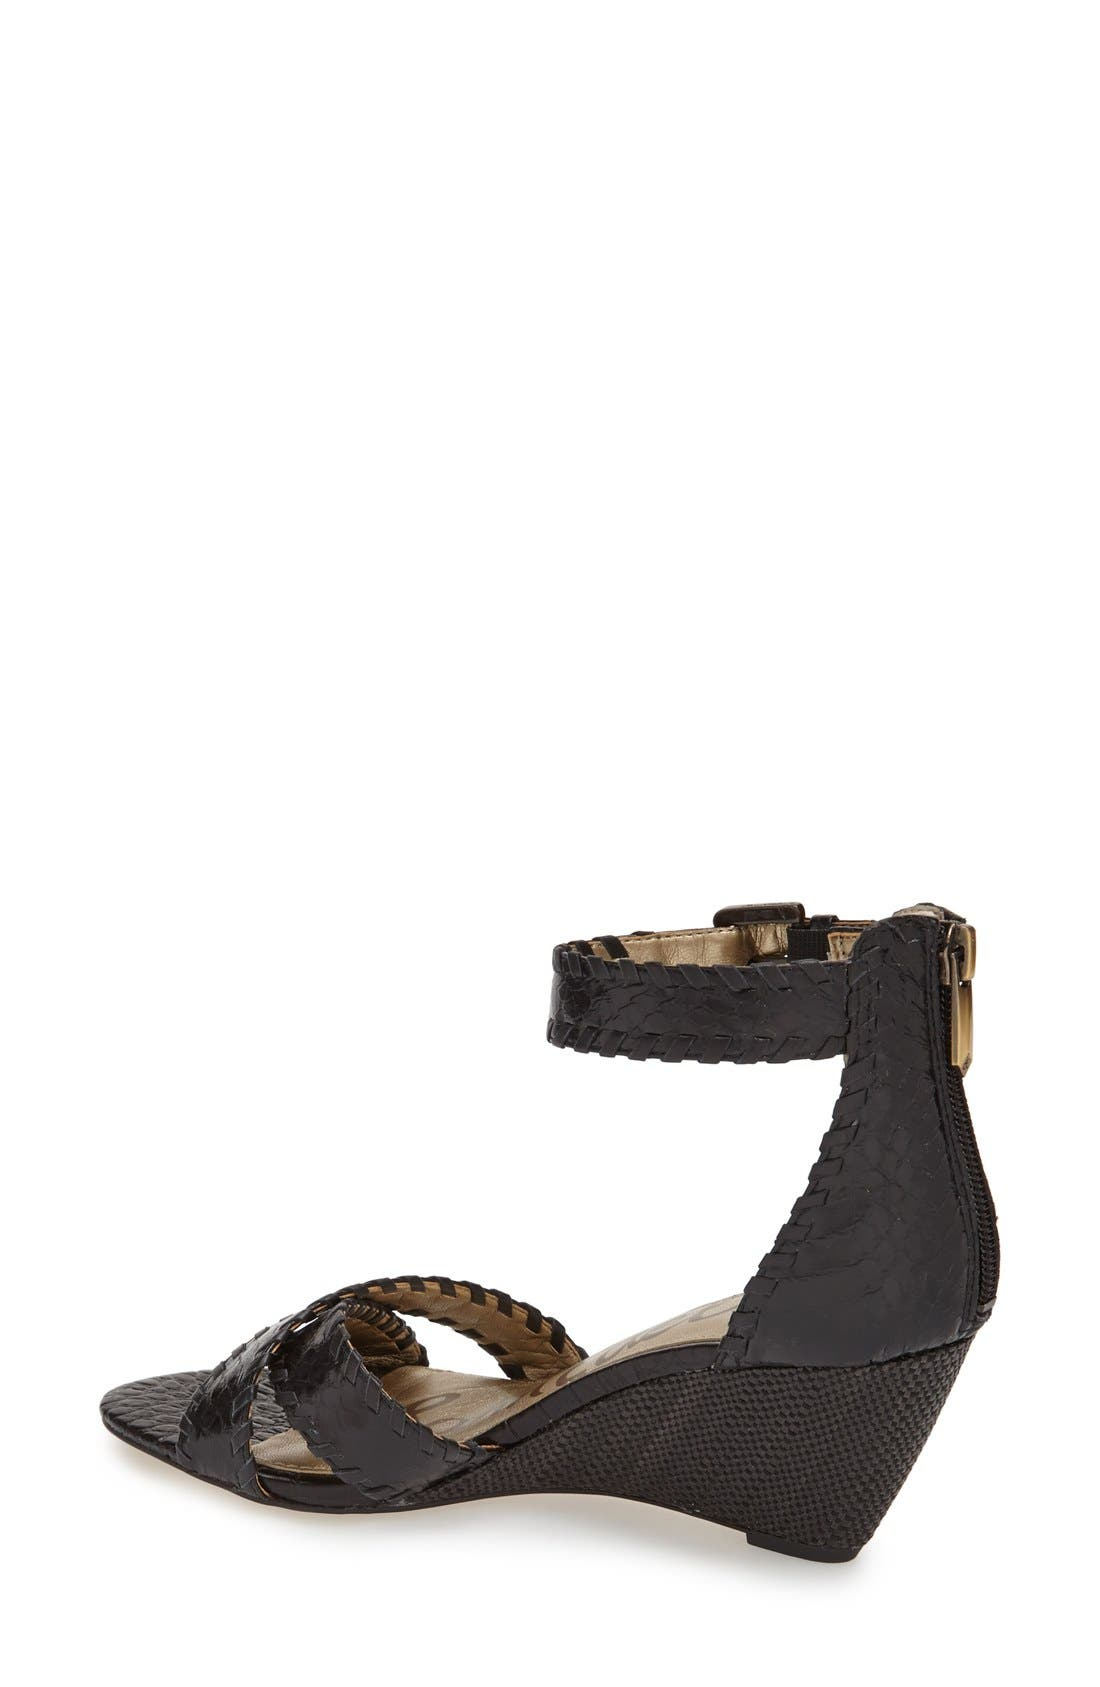 Alternate Image 2  - Sam Edelman 'Silvia' Ankle Strap Wedge Sandal (Women)